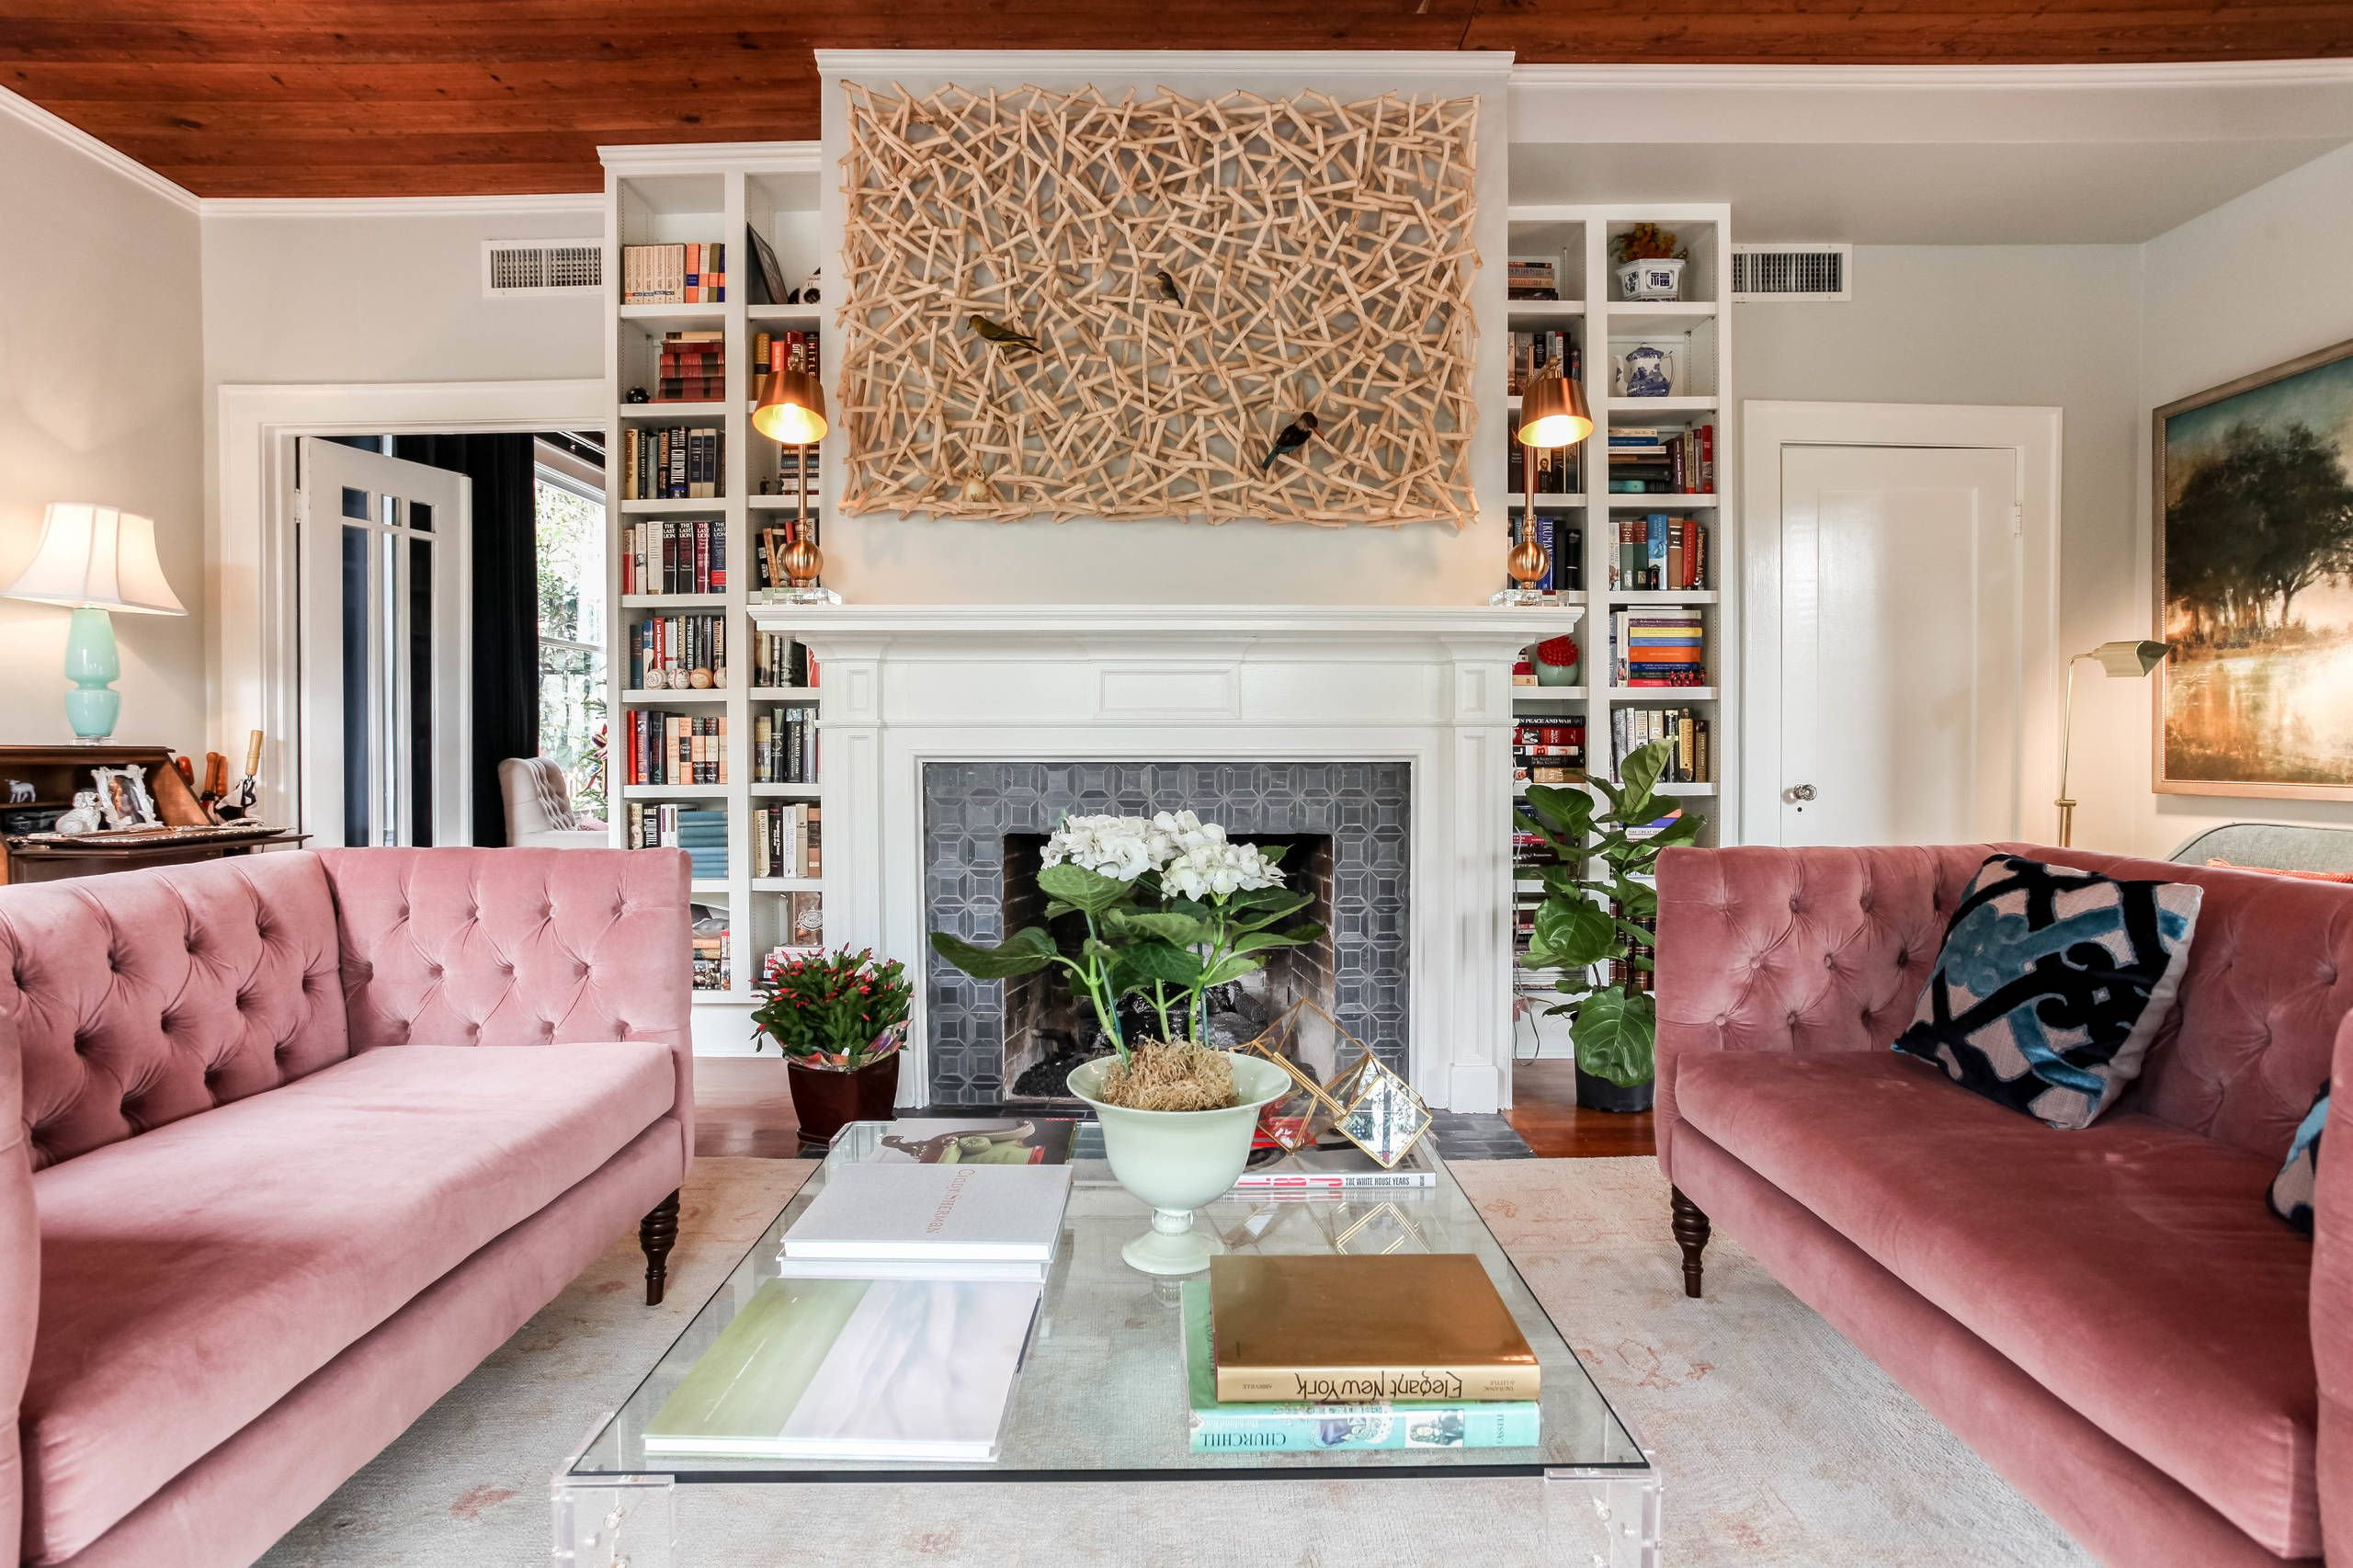 Edle Couchgarnituren 46 Picture Perfect Living Rooms - Home Awakening | Pink Sofa Living Room, Pink Sofa Living, Perfect Living Room